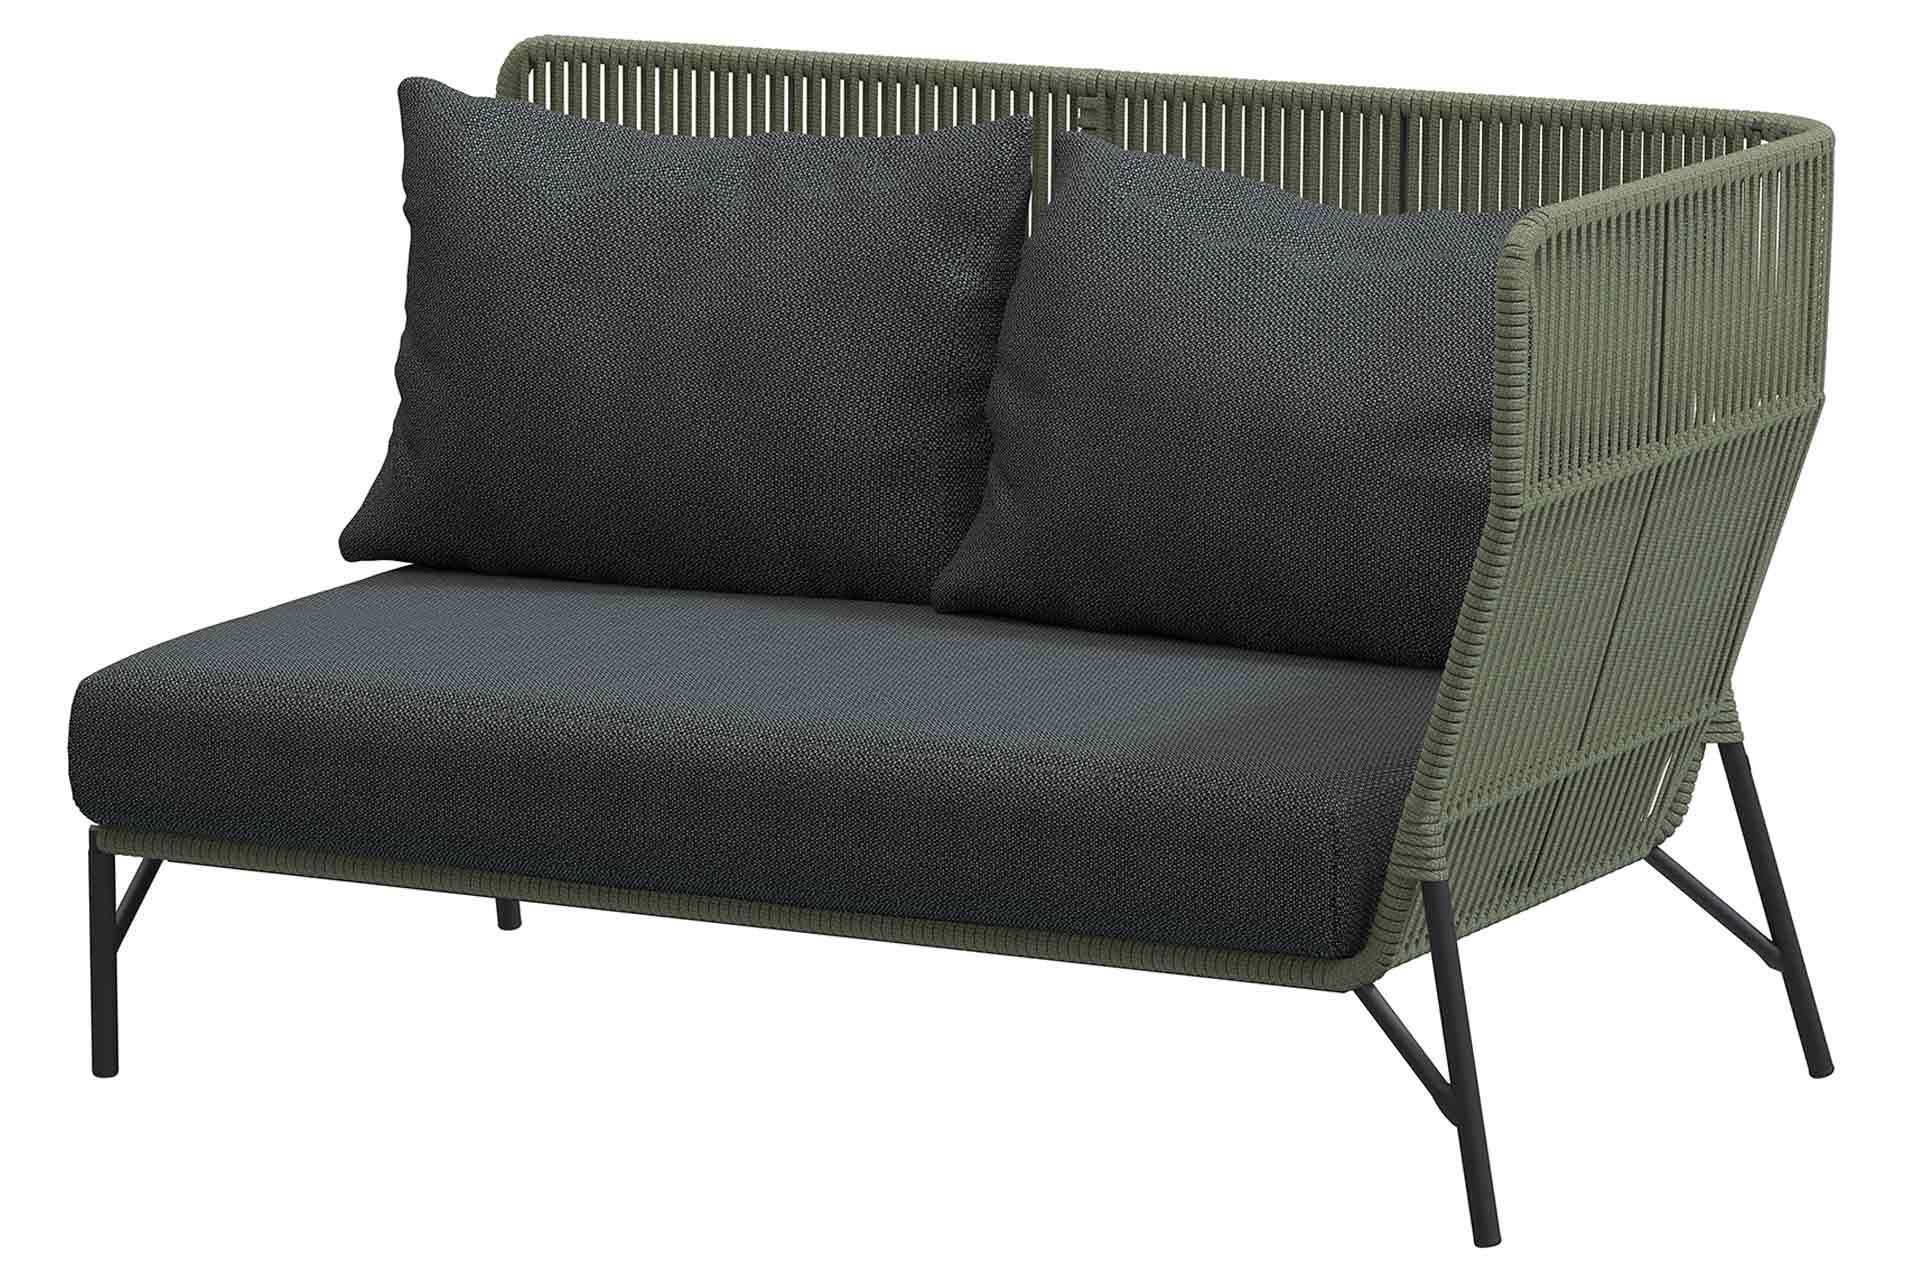 Altoro Modular 2 seater left arm Green with 3 cushions